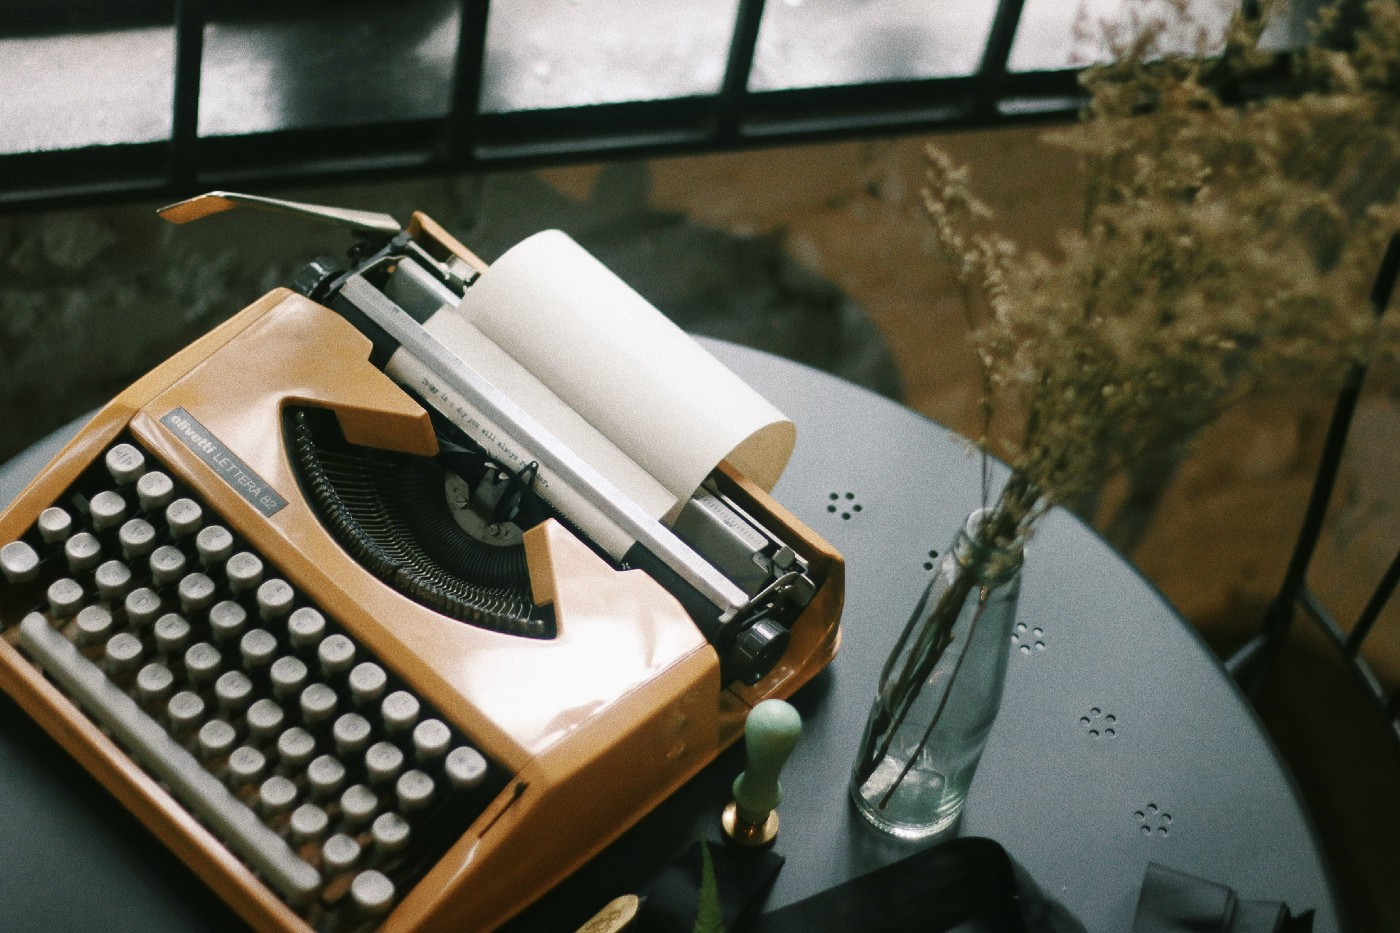 typewriter on table with vase of dried flowers